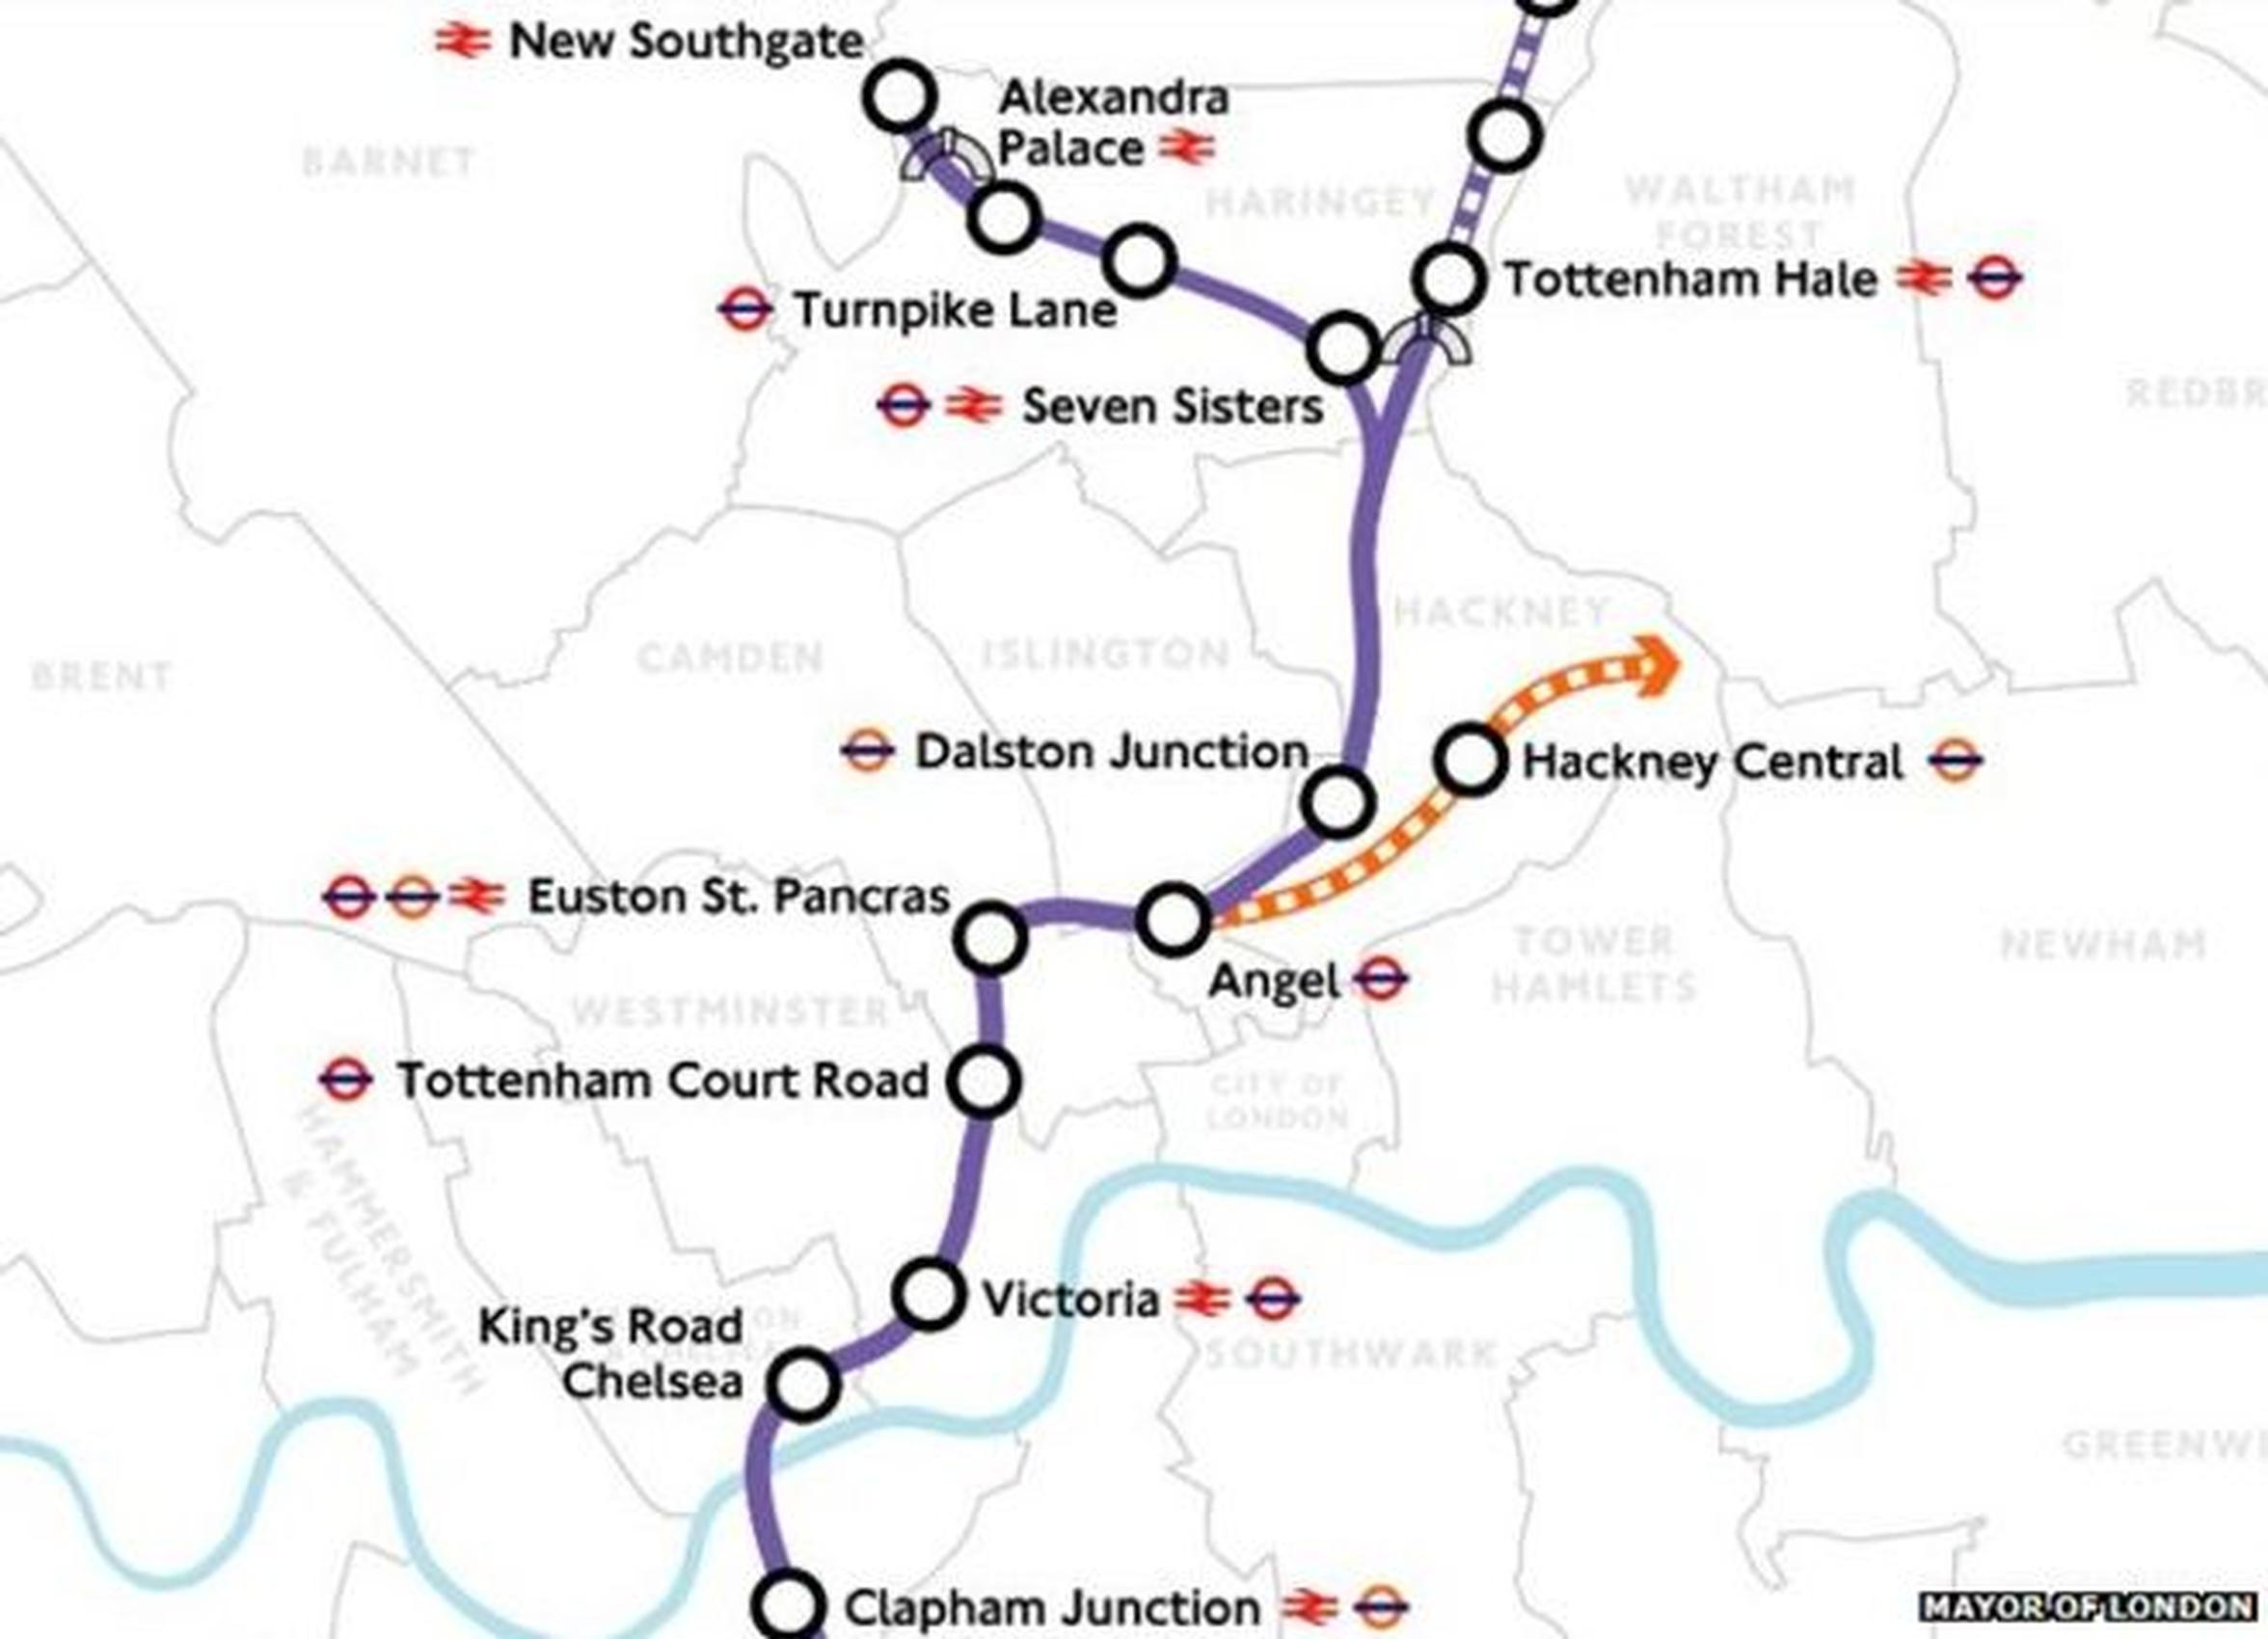 Queen's Speech: HS2 to Crewe, transport sector concern over exclusion of Crossrail 2